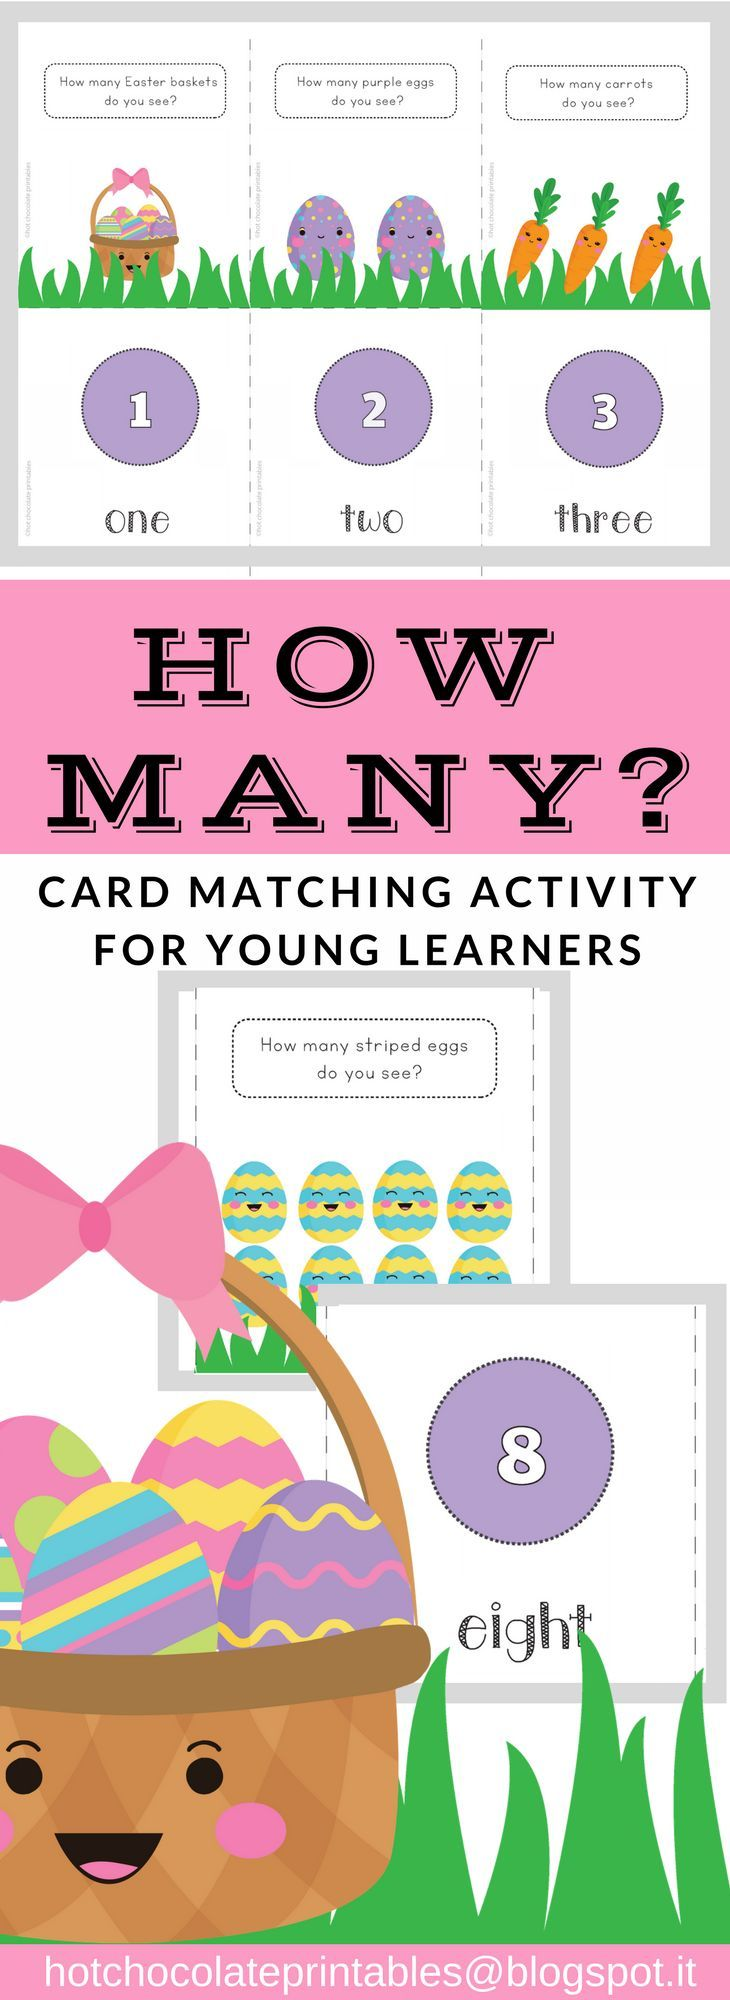 Easter Card Match Activity - Numbers 1 to 10